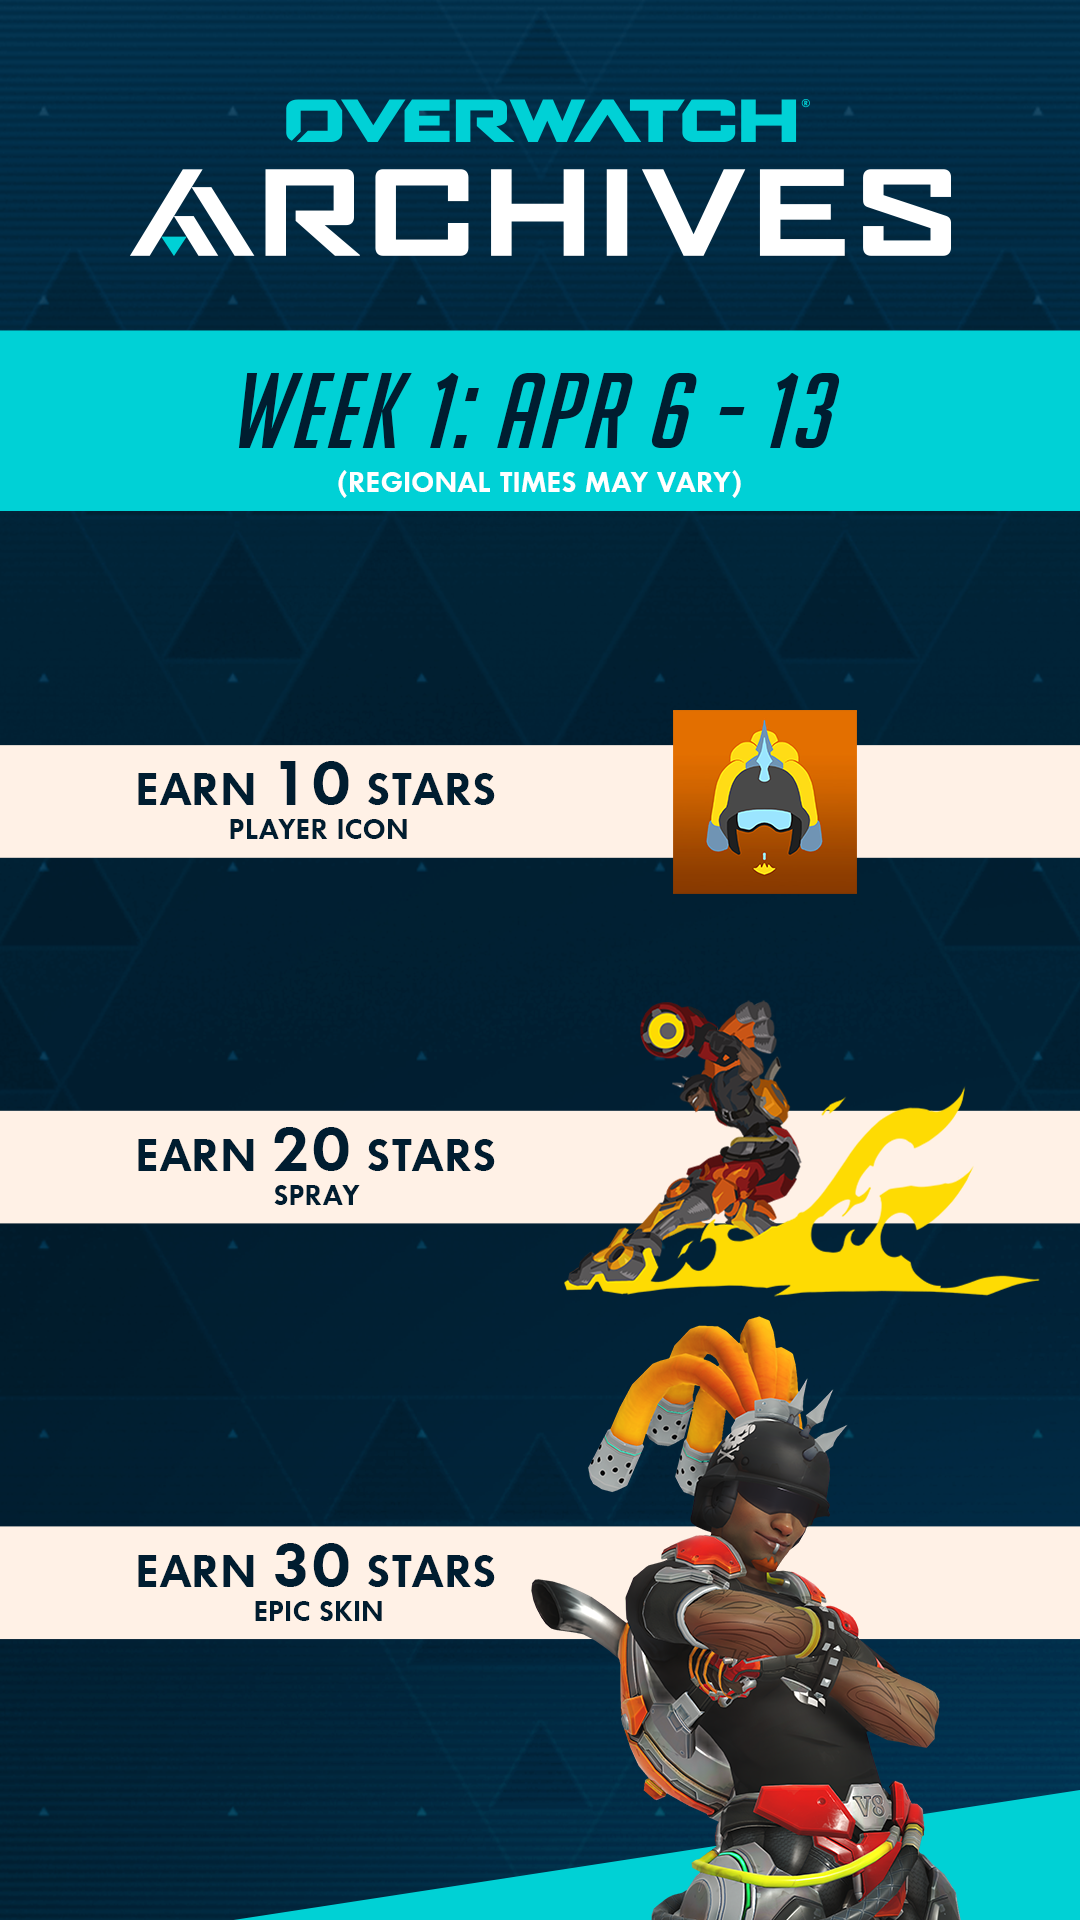 Week 1 Rewards